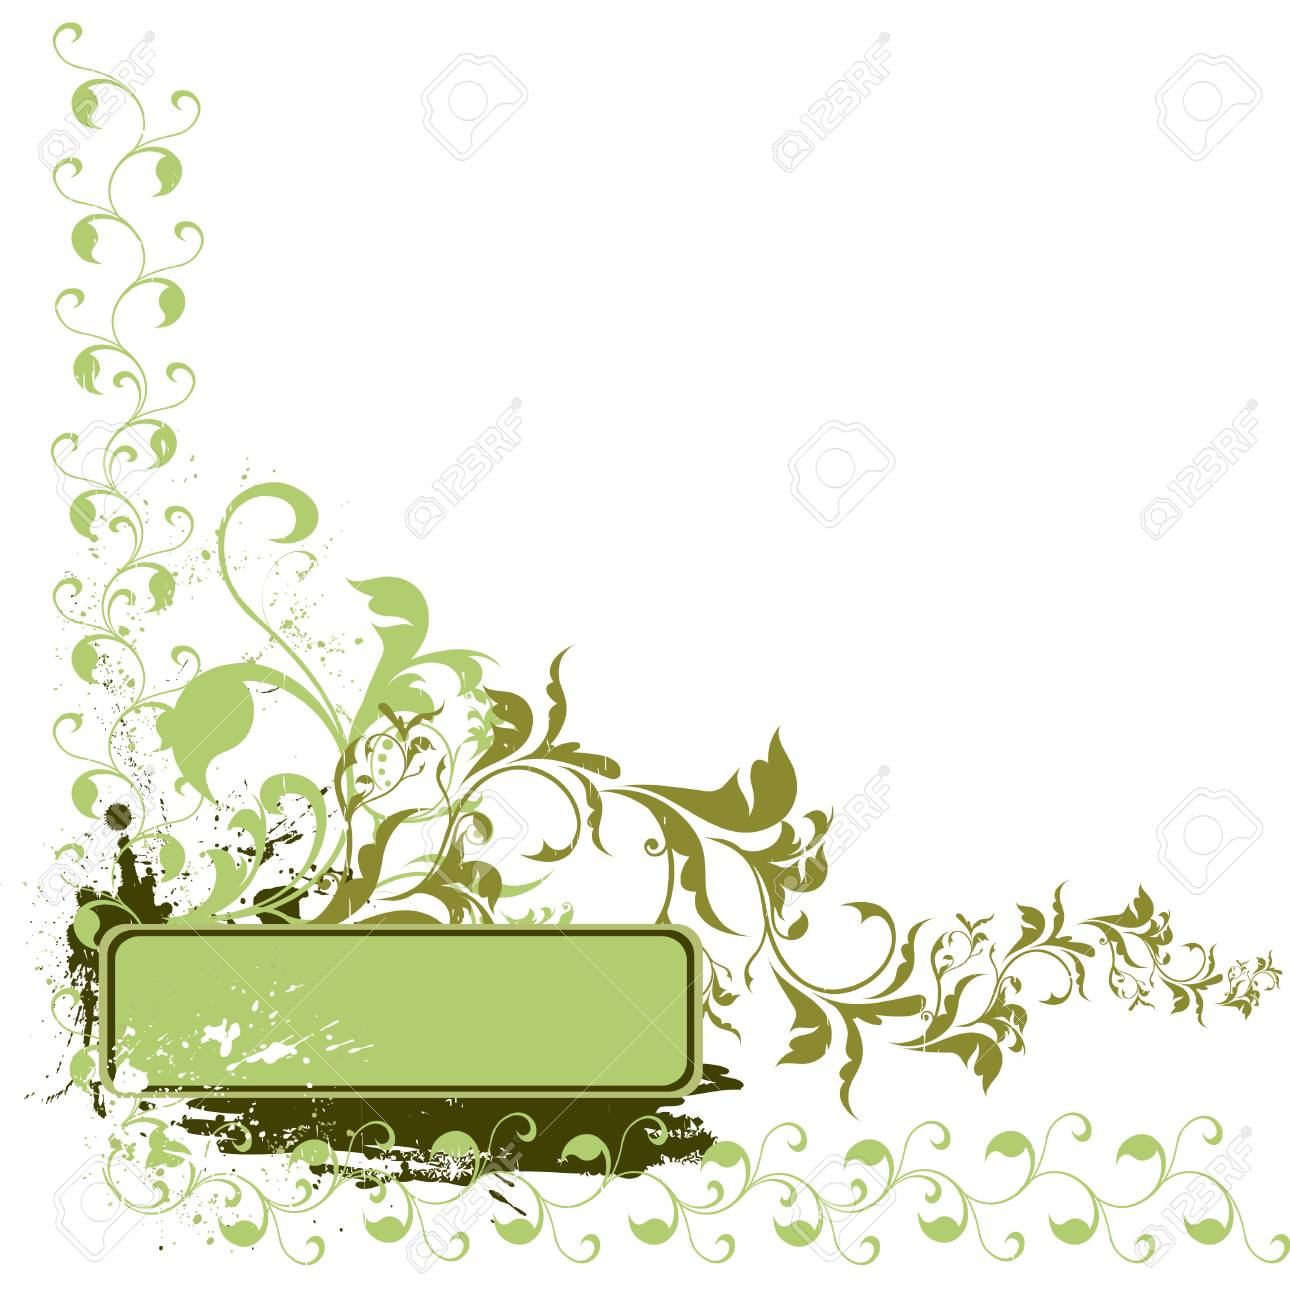 Grunge floral background with copy space Stock Vector - 4361665